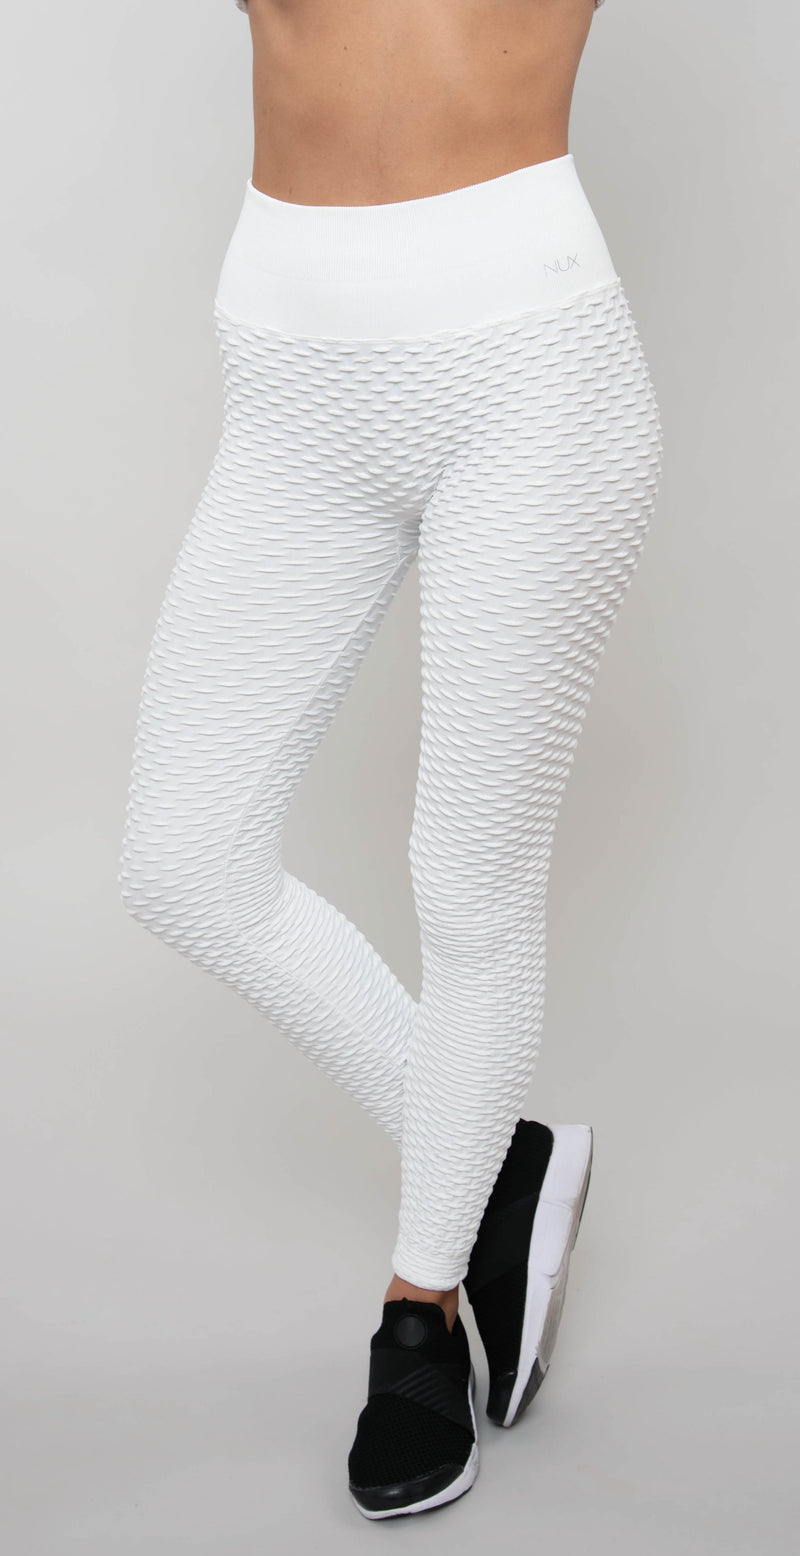 Nux Layer Up Legging Snow